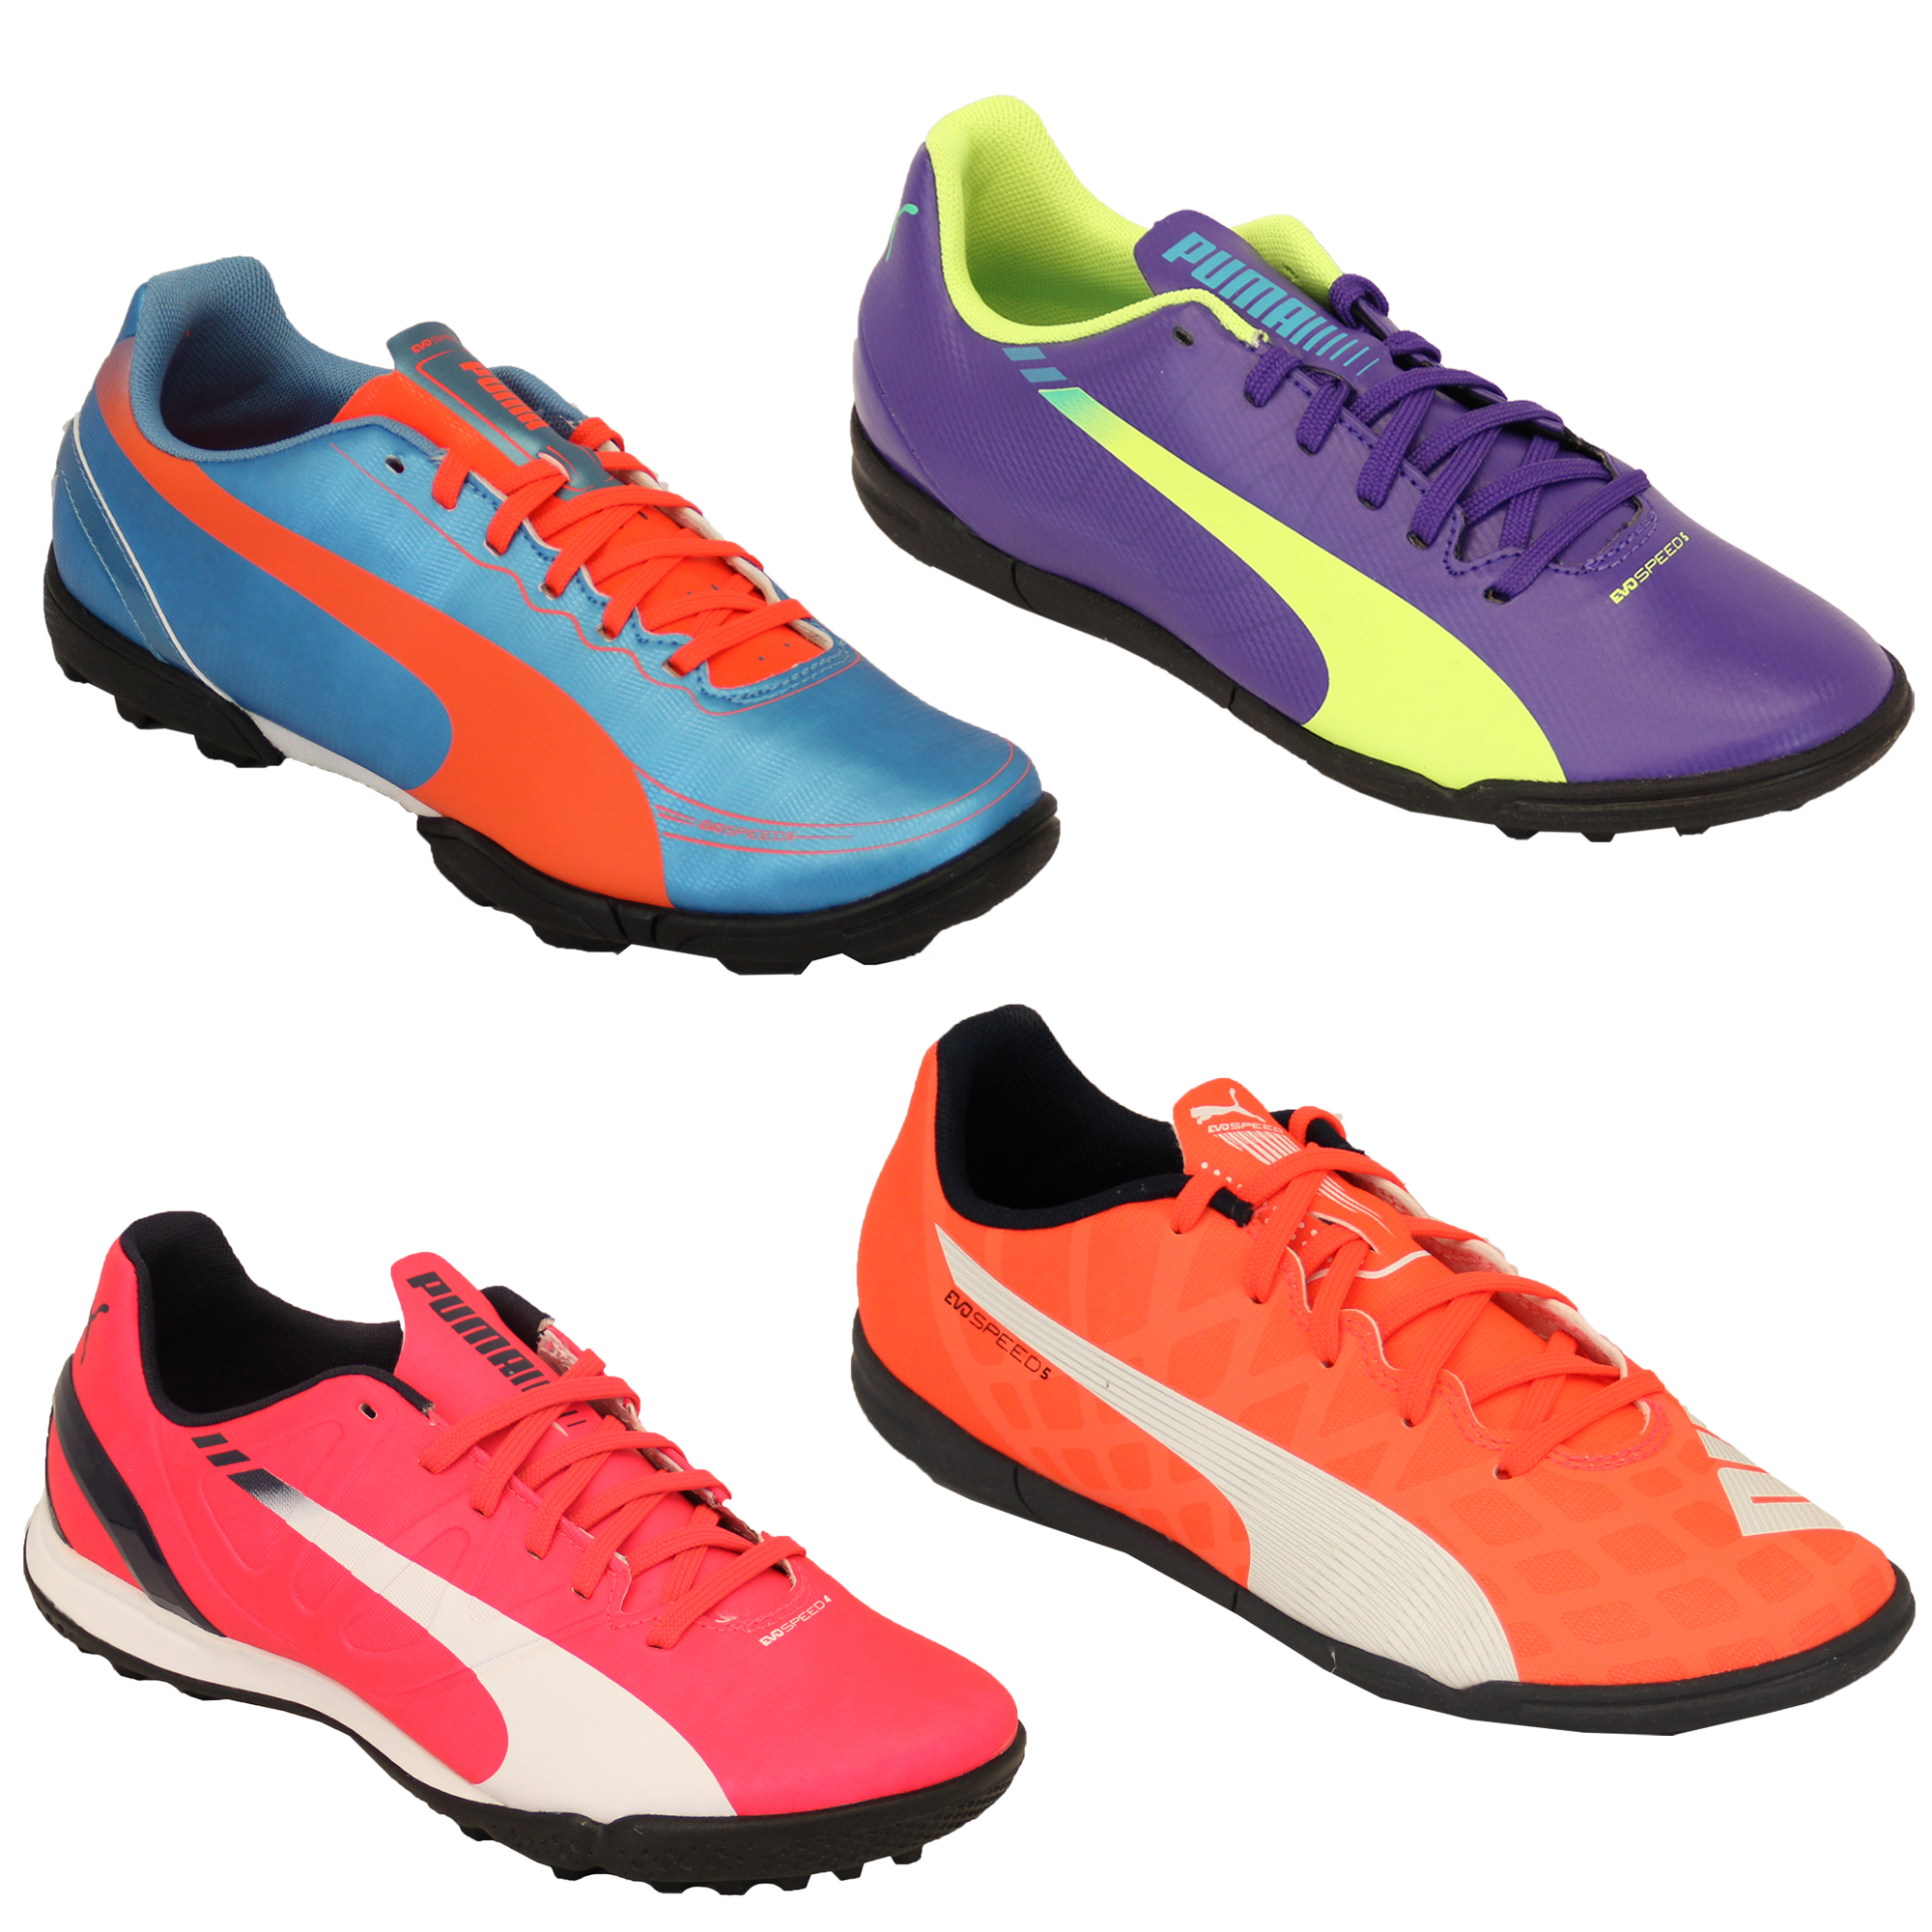 5364bcd33d0 Girls Boys Football Trainers Puma Kids EvoSpeed Boots Astro Turf ...